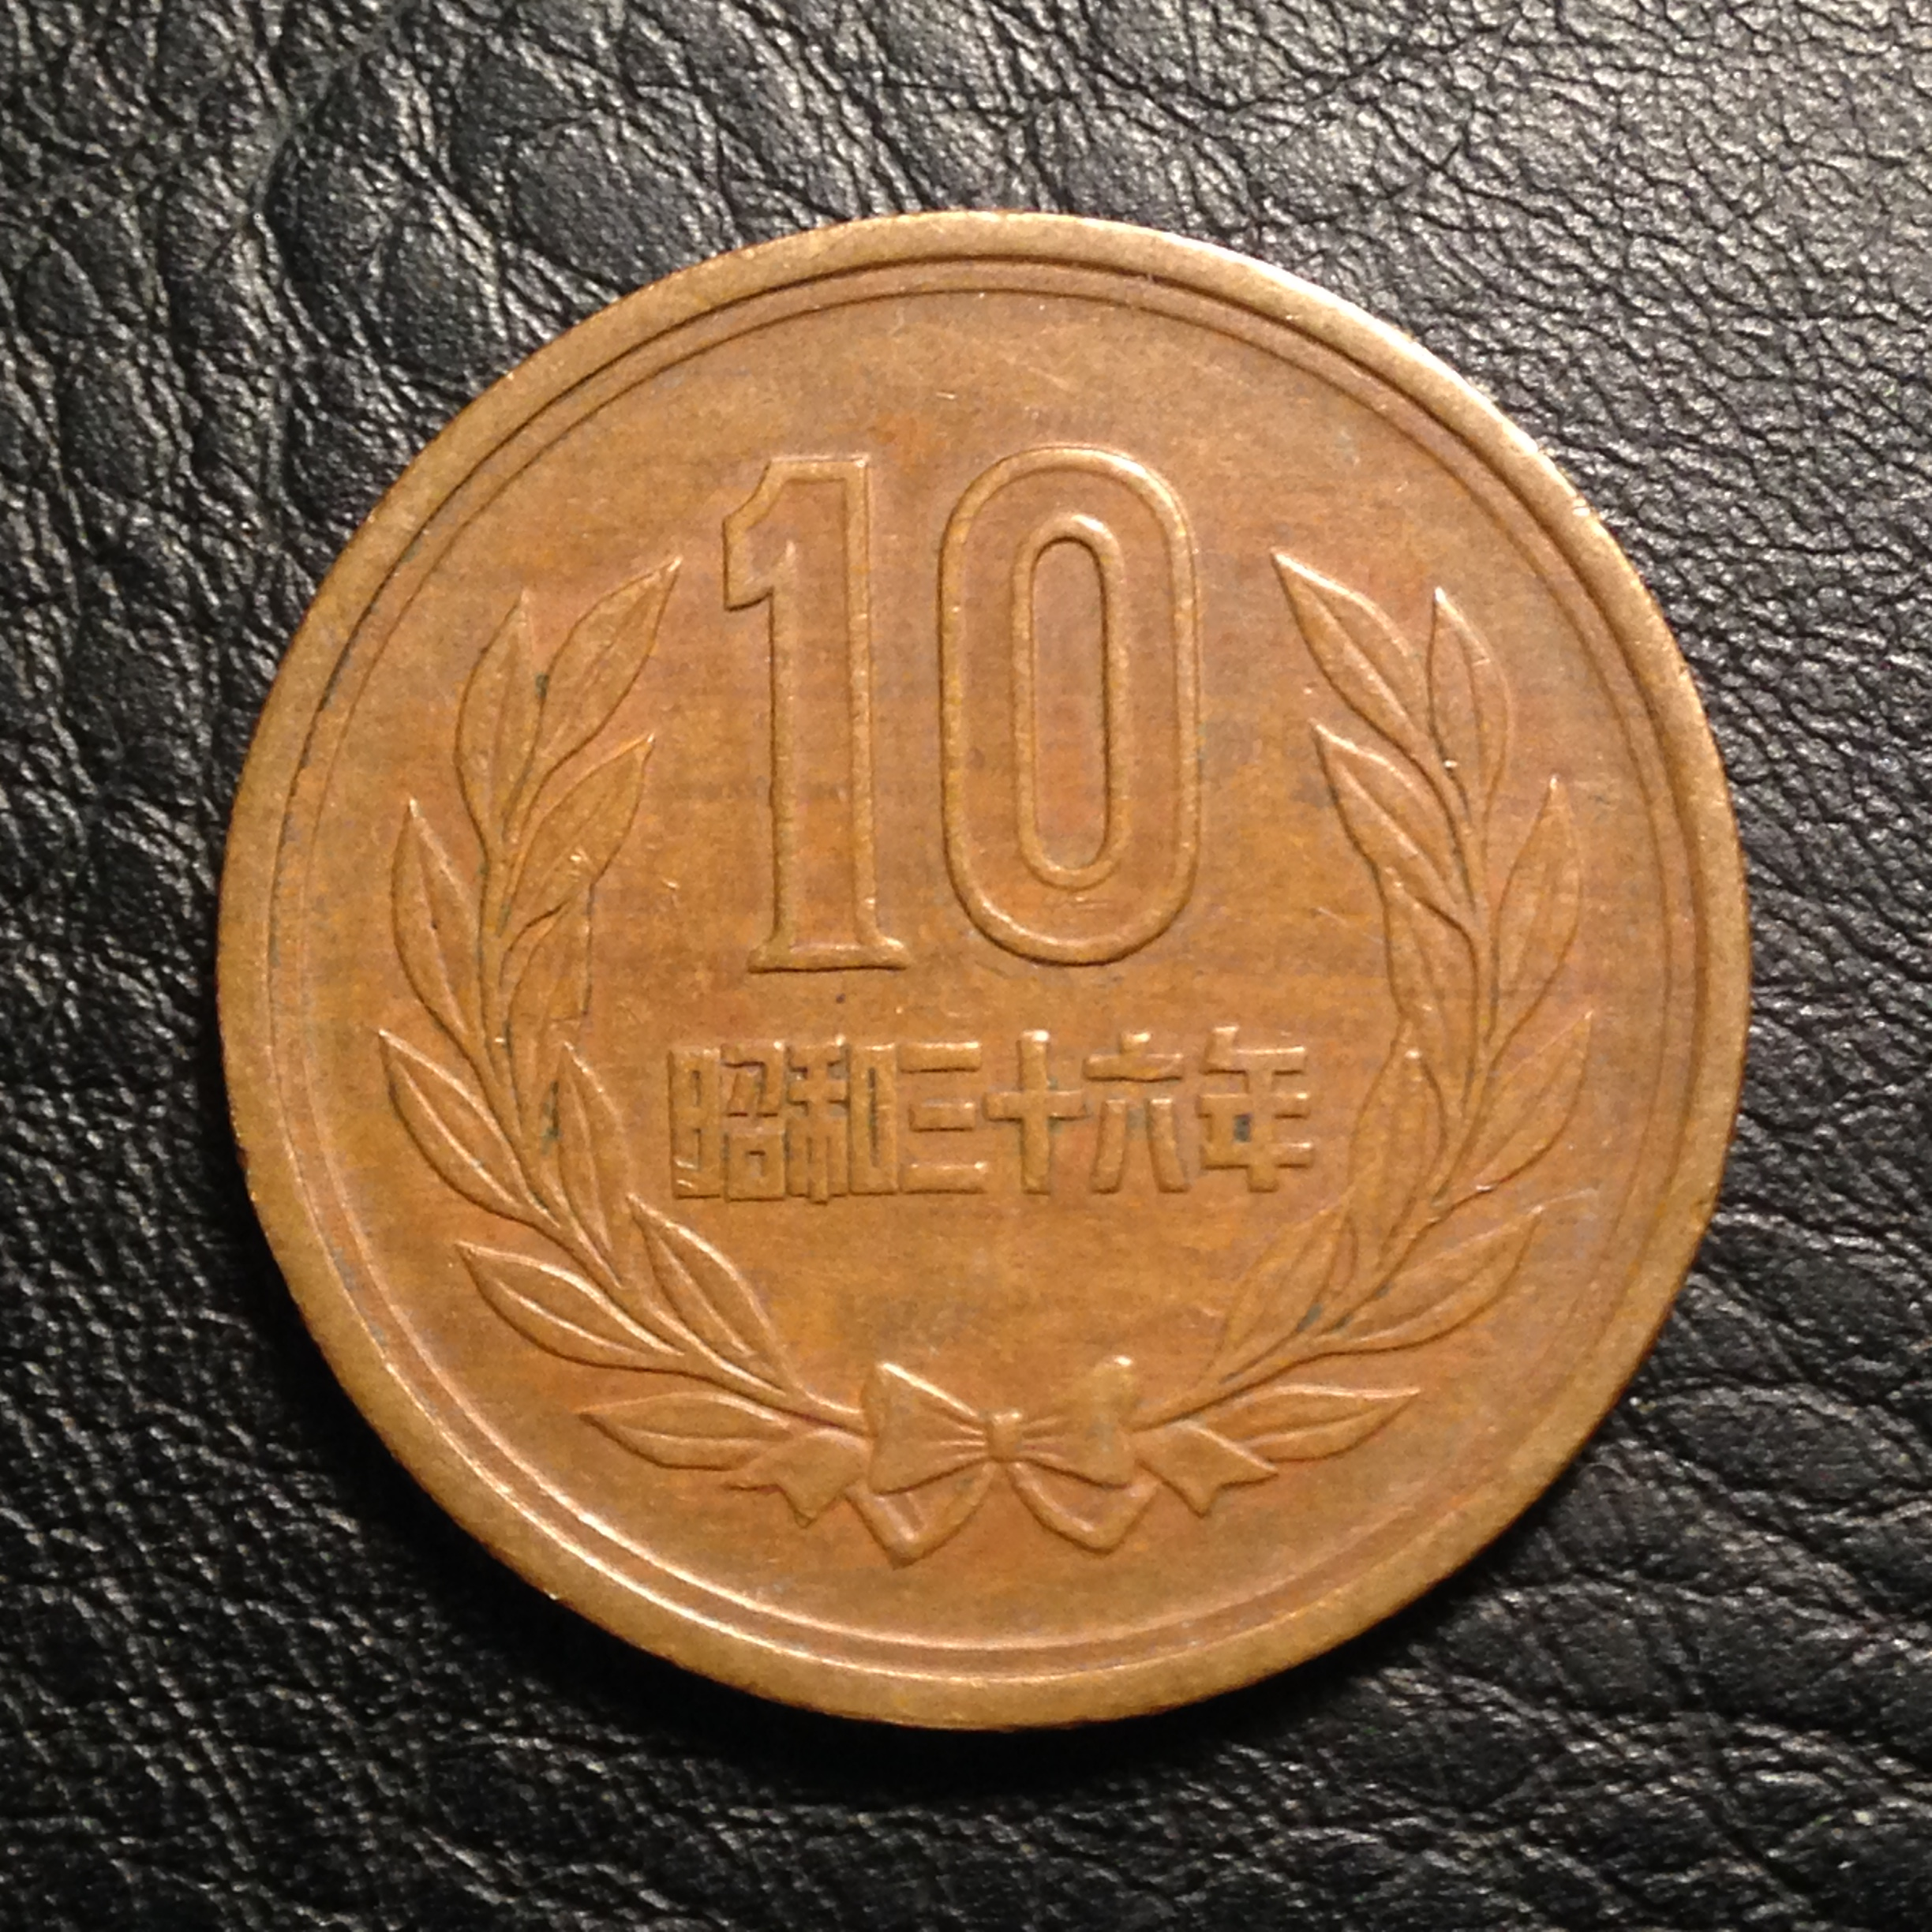 Coin Image Identifier